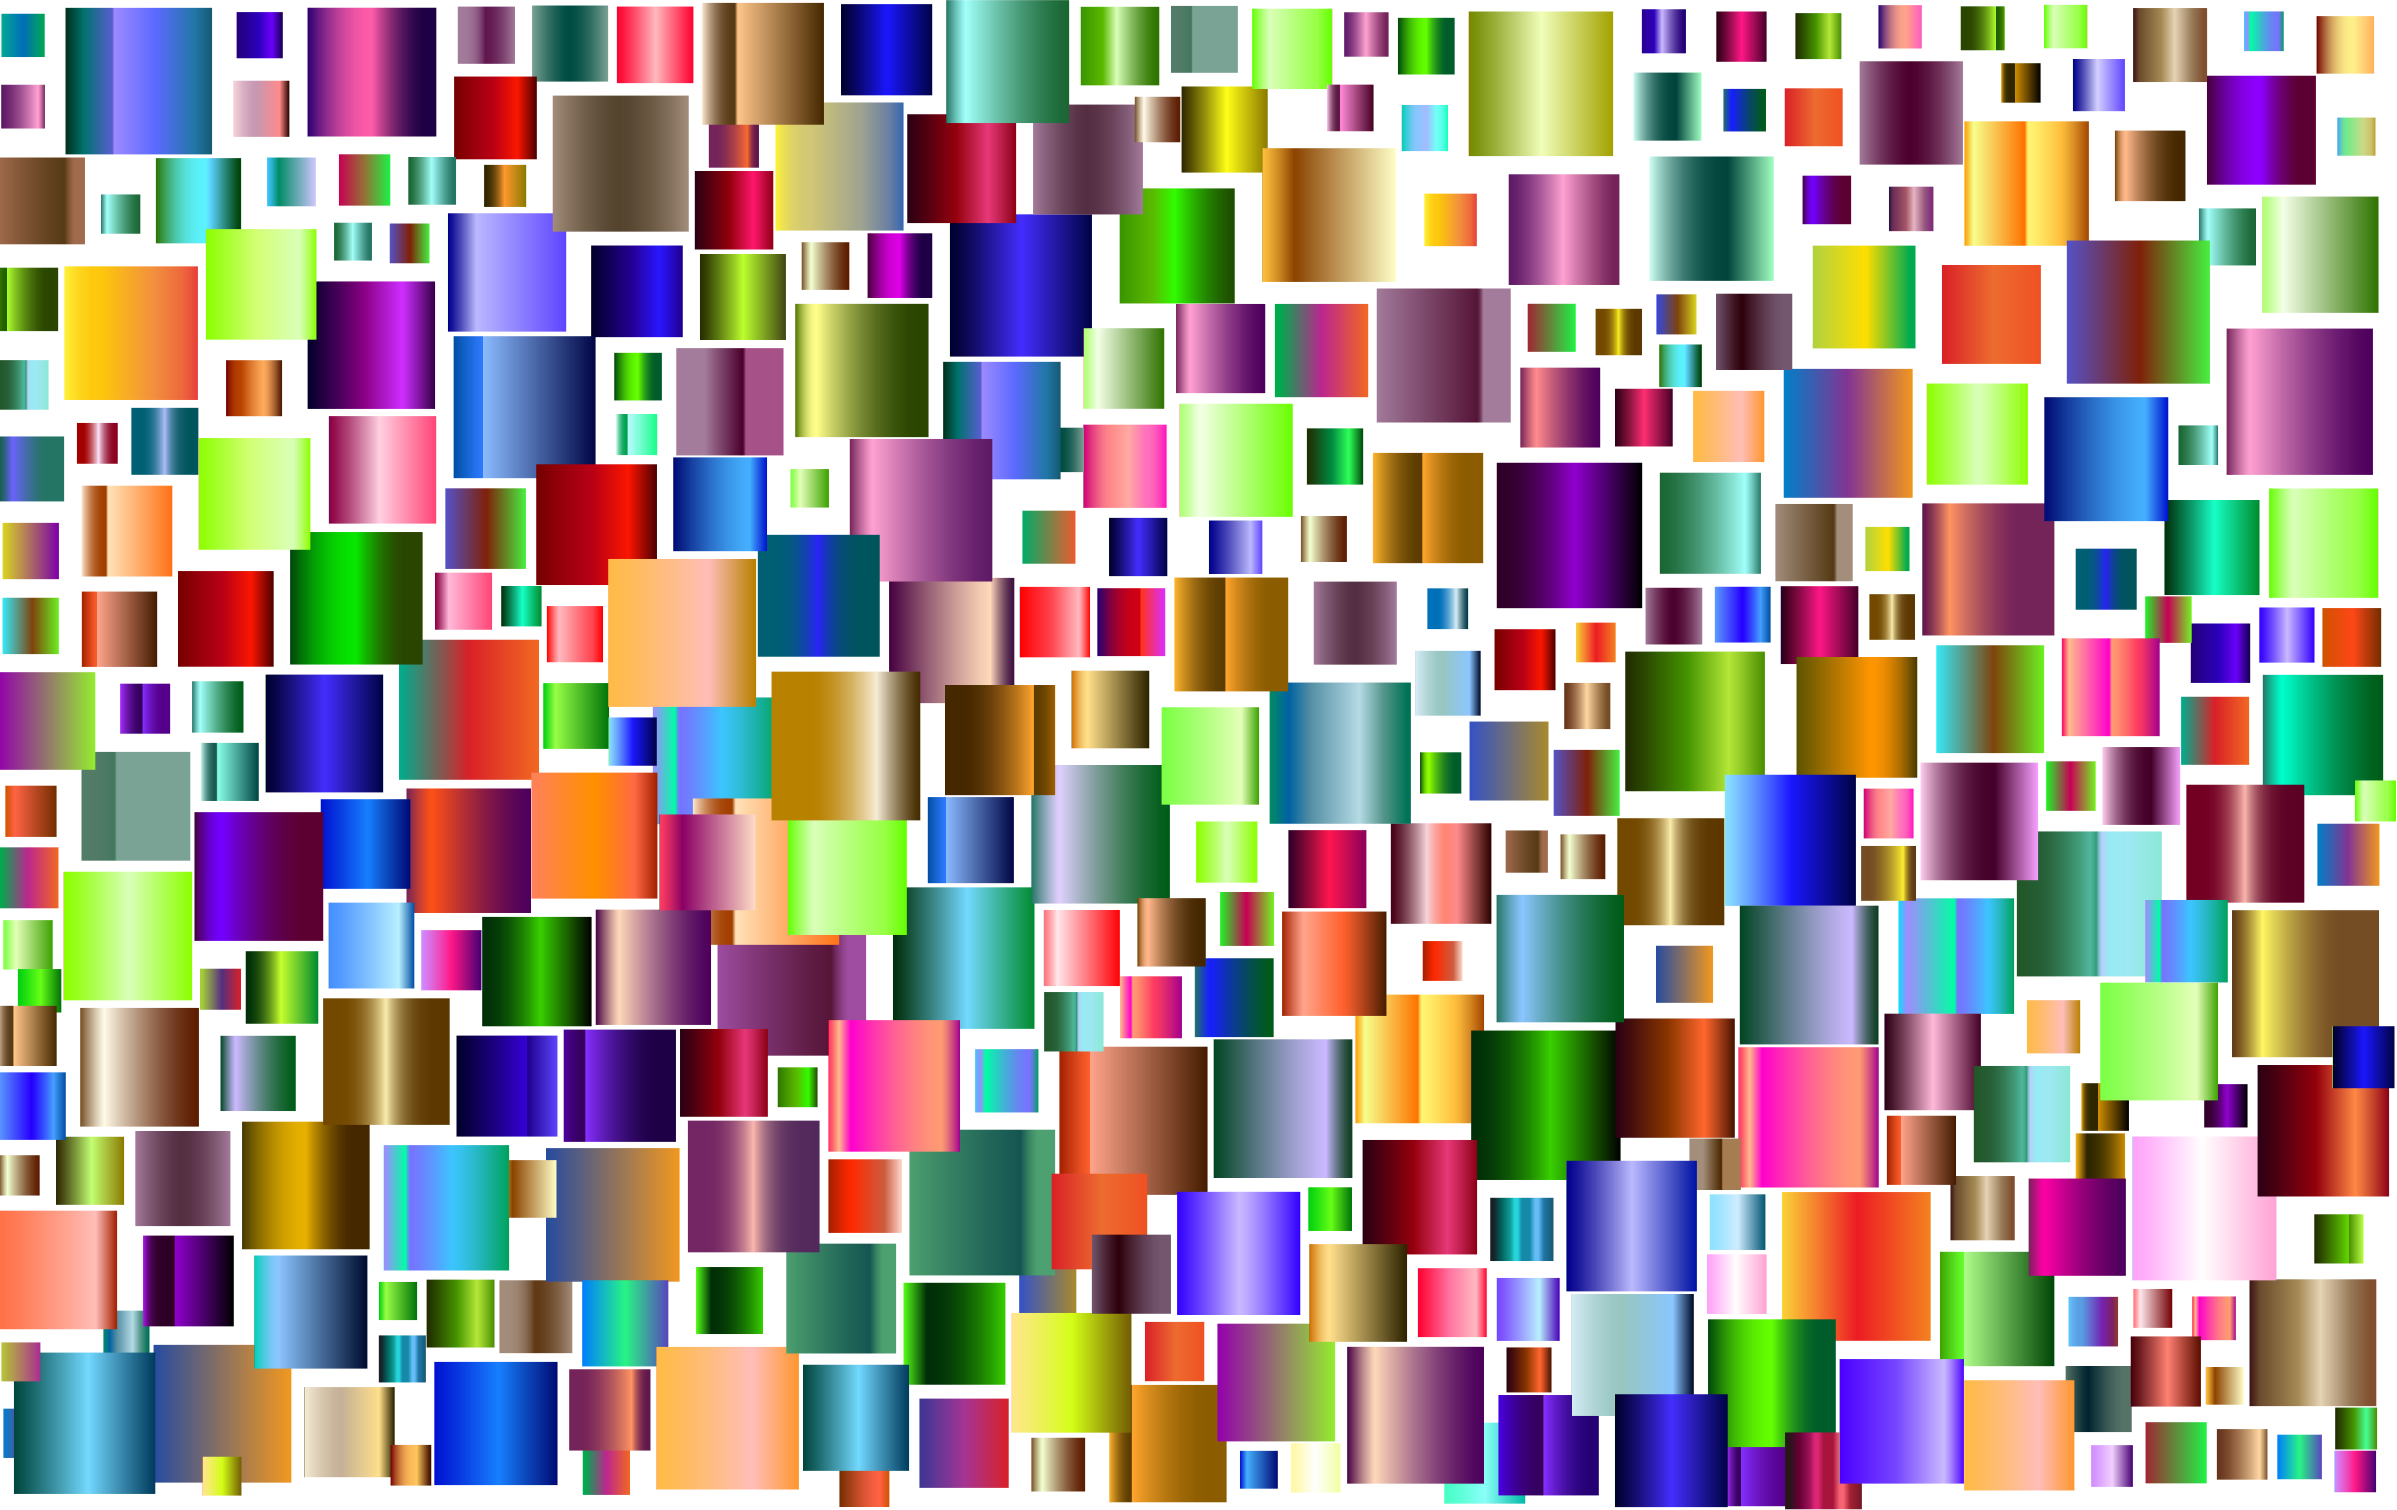 Prismatic Abstract Squares 2 by GDJ